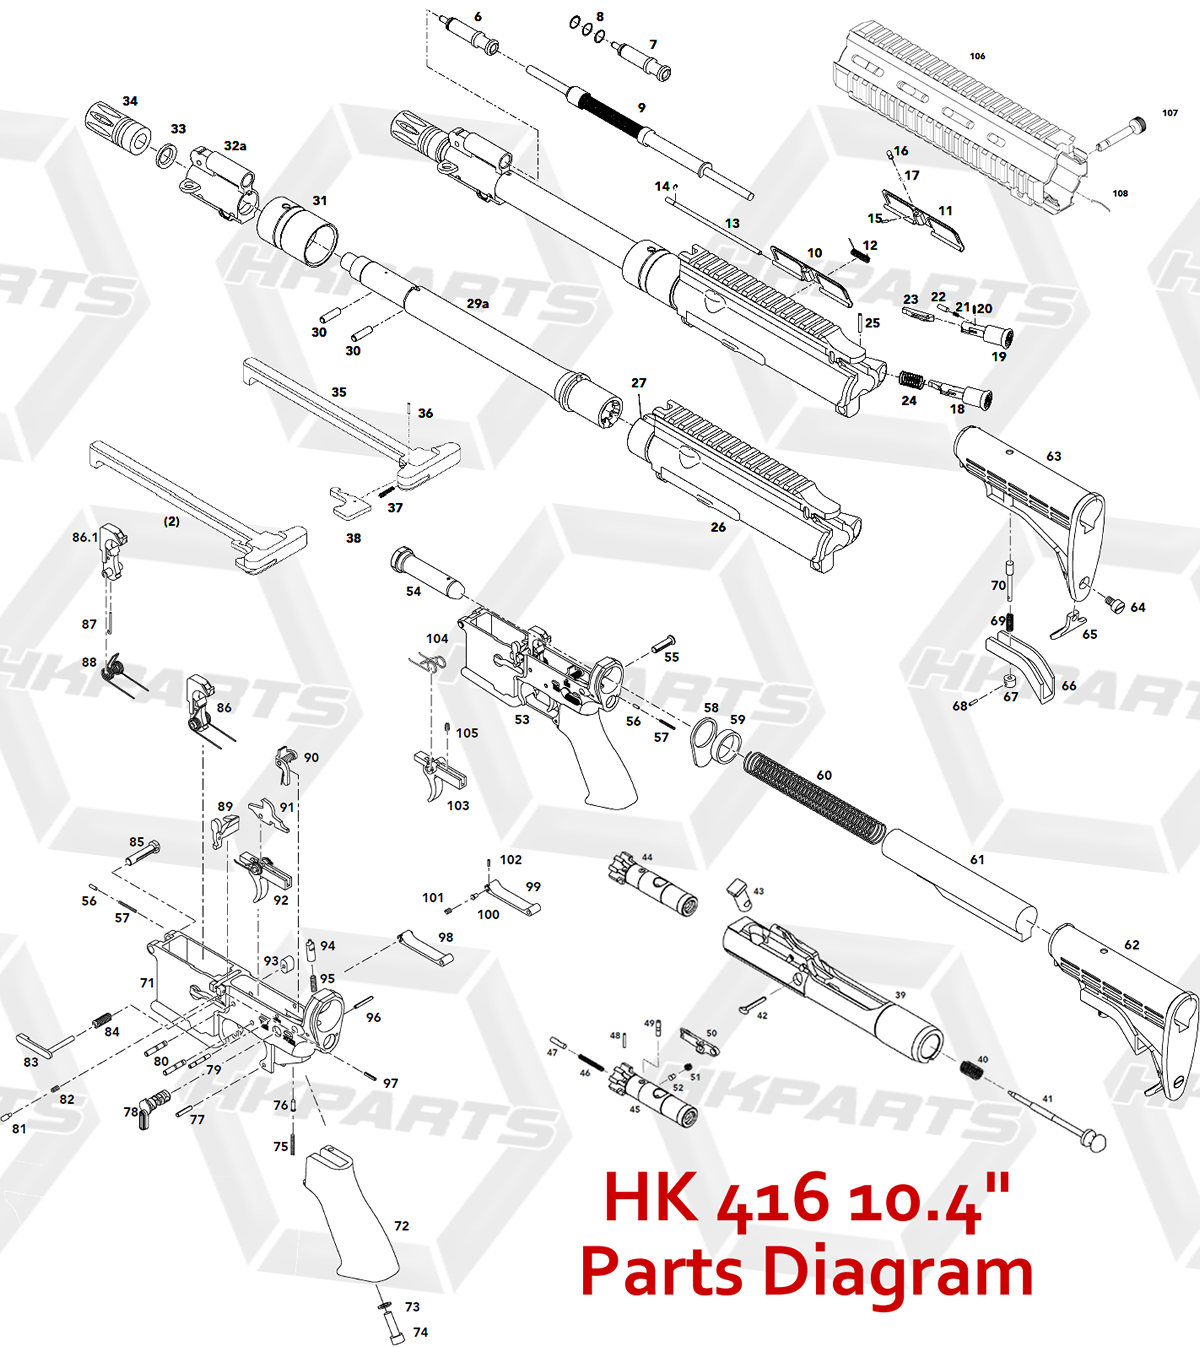 hk416 disassembly - Google Search | Gun building | 총